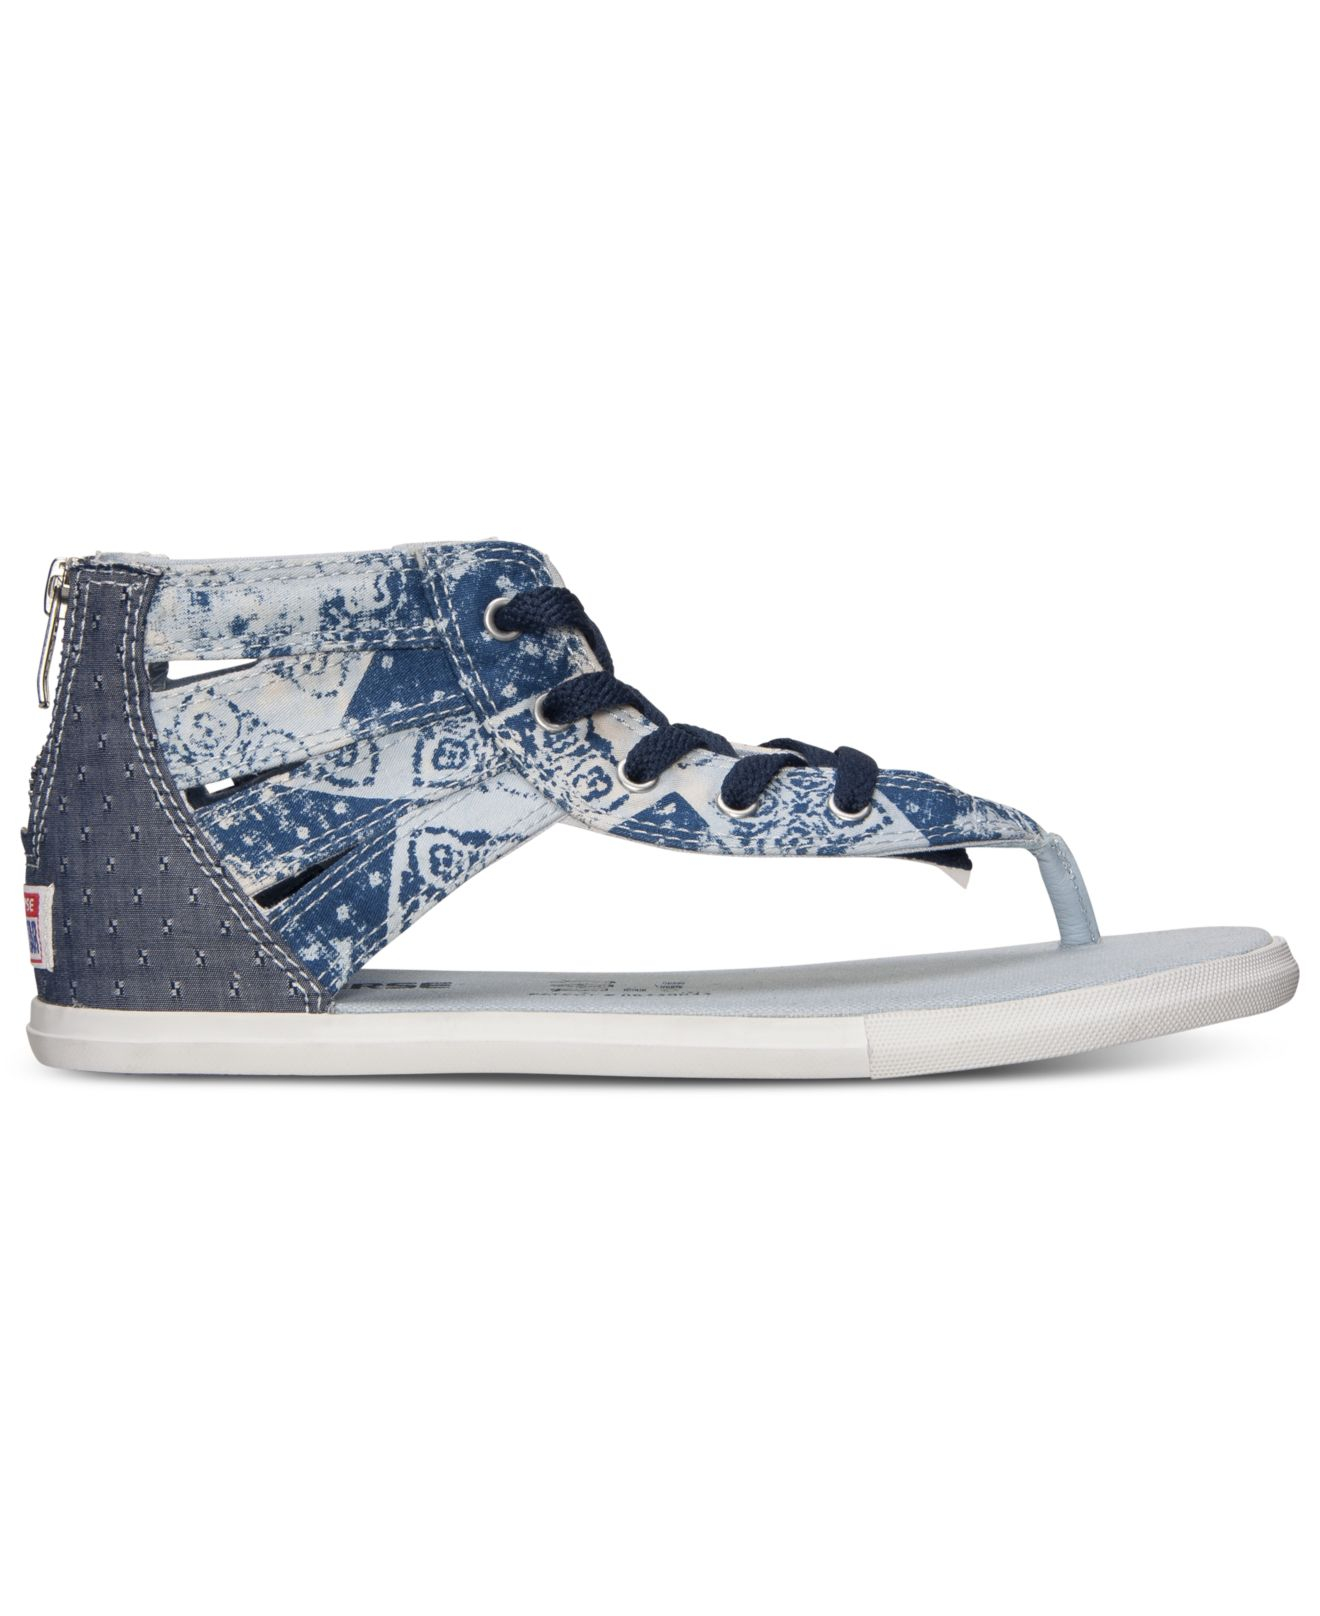 Lyst - Converse Women s Chuck Taylor Gladiator Thong Sandals From ... 8184b06bc